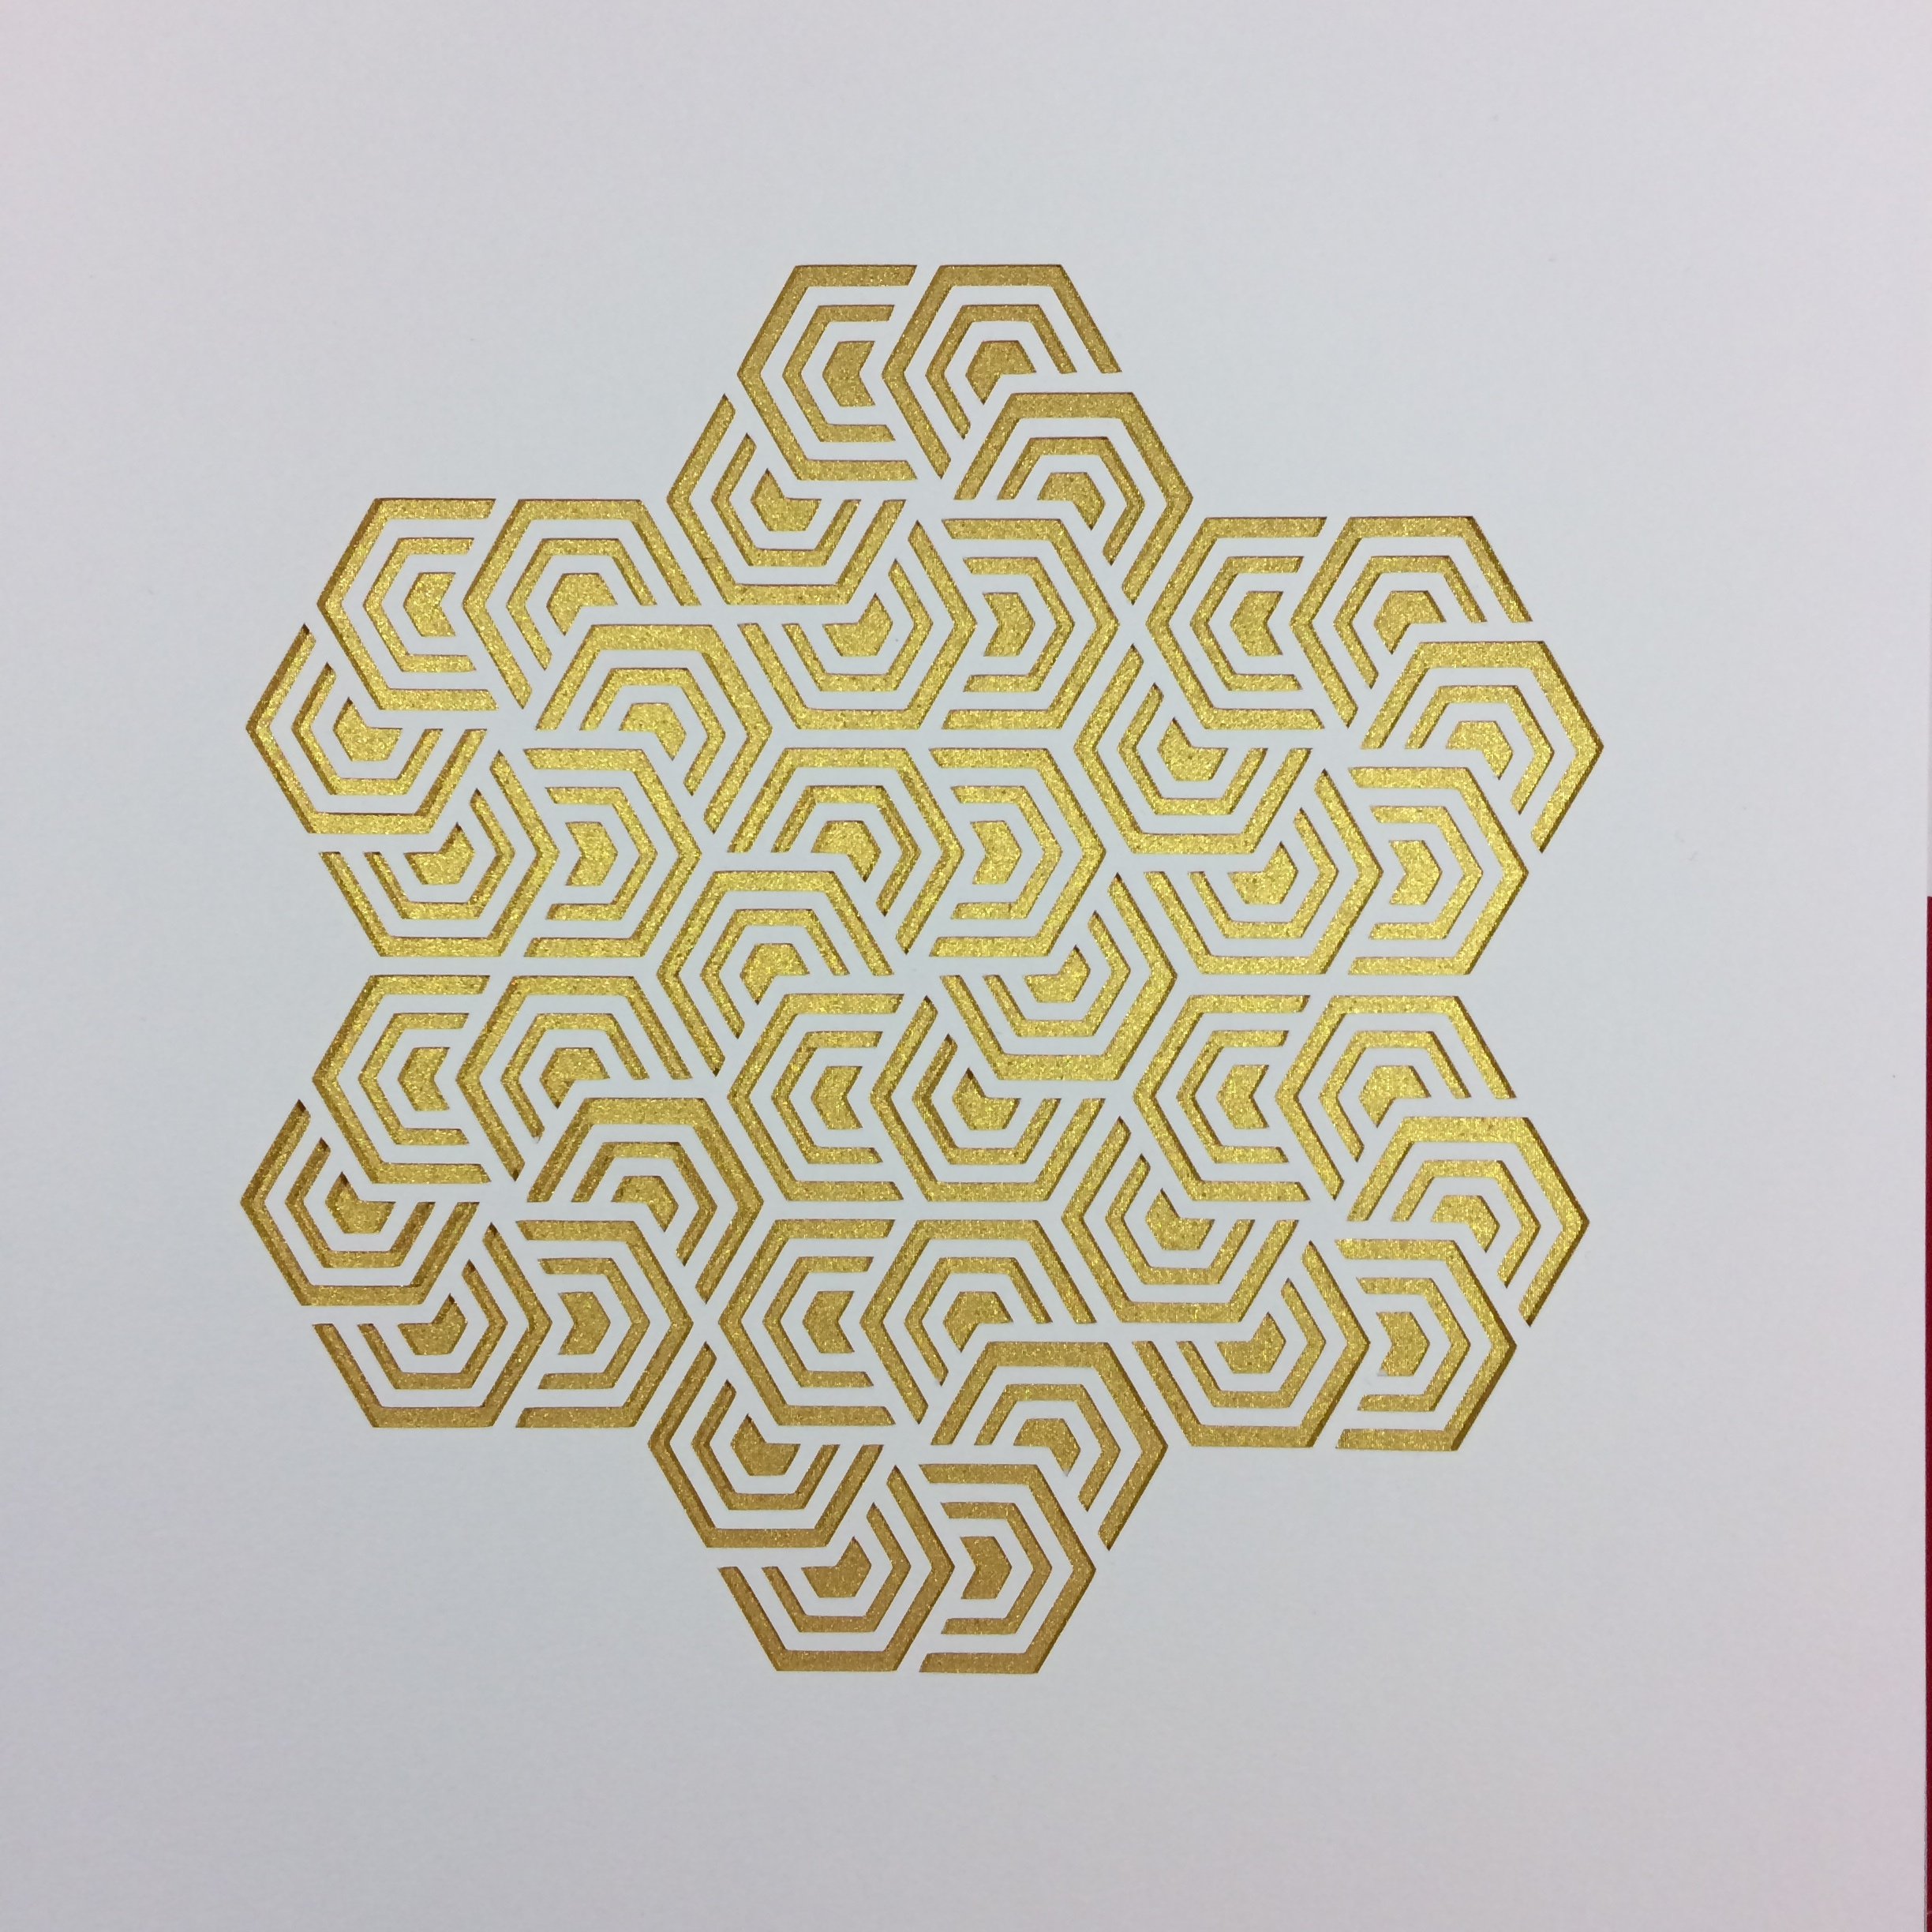 Kartegraphik Hexagon Paper Cut 3.JPG